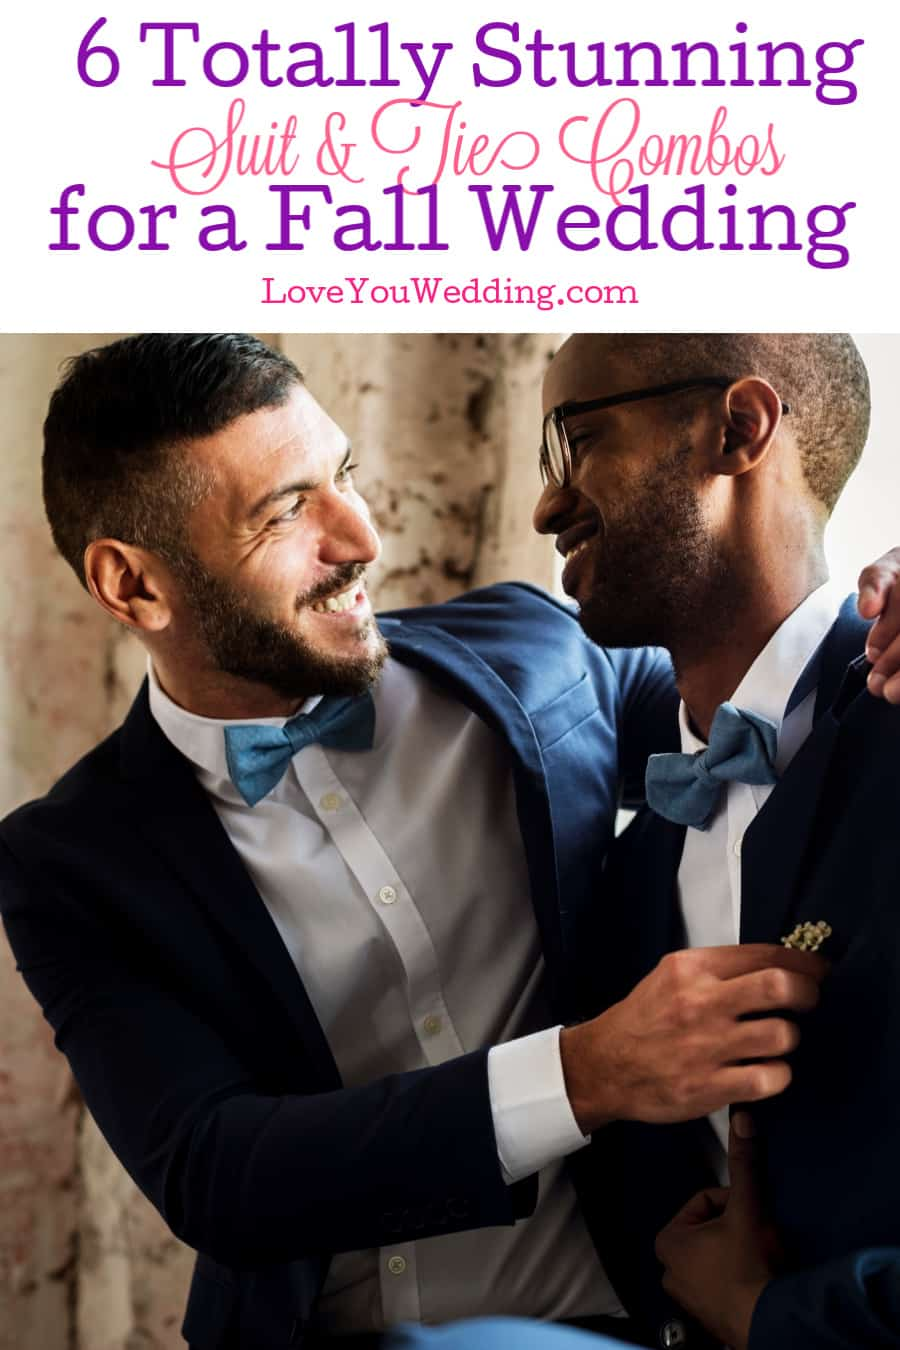 Looking for some amazing ideas for suit and tie combos for a fall wedding? Check out our top six custom outfits that will look absolutely stunning!